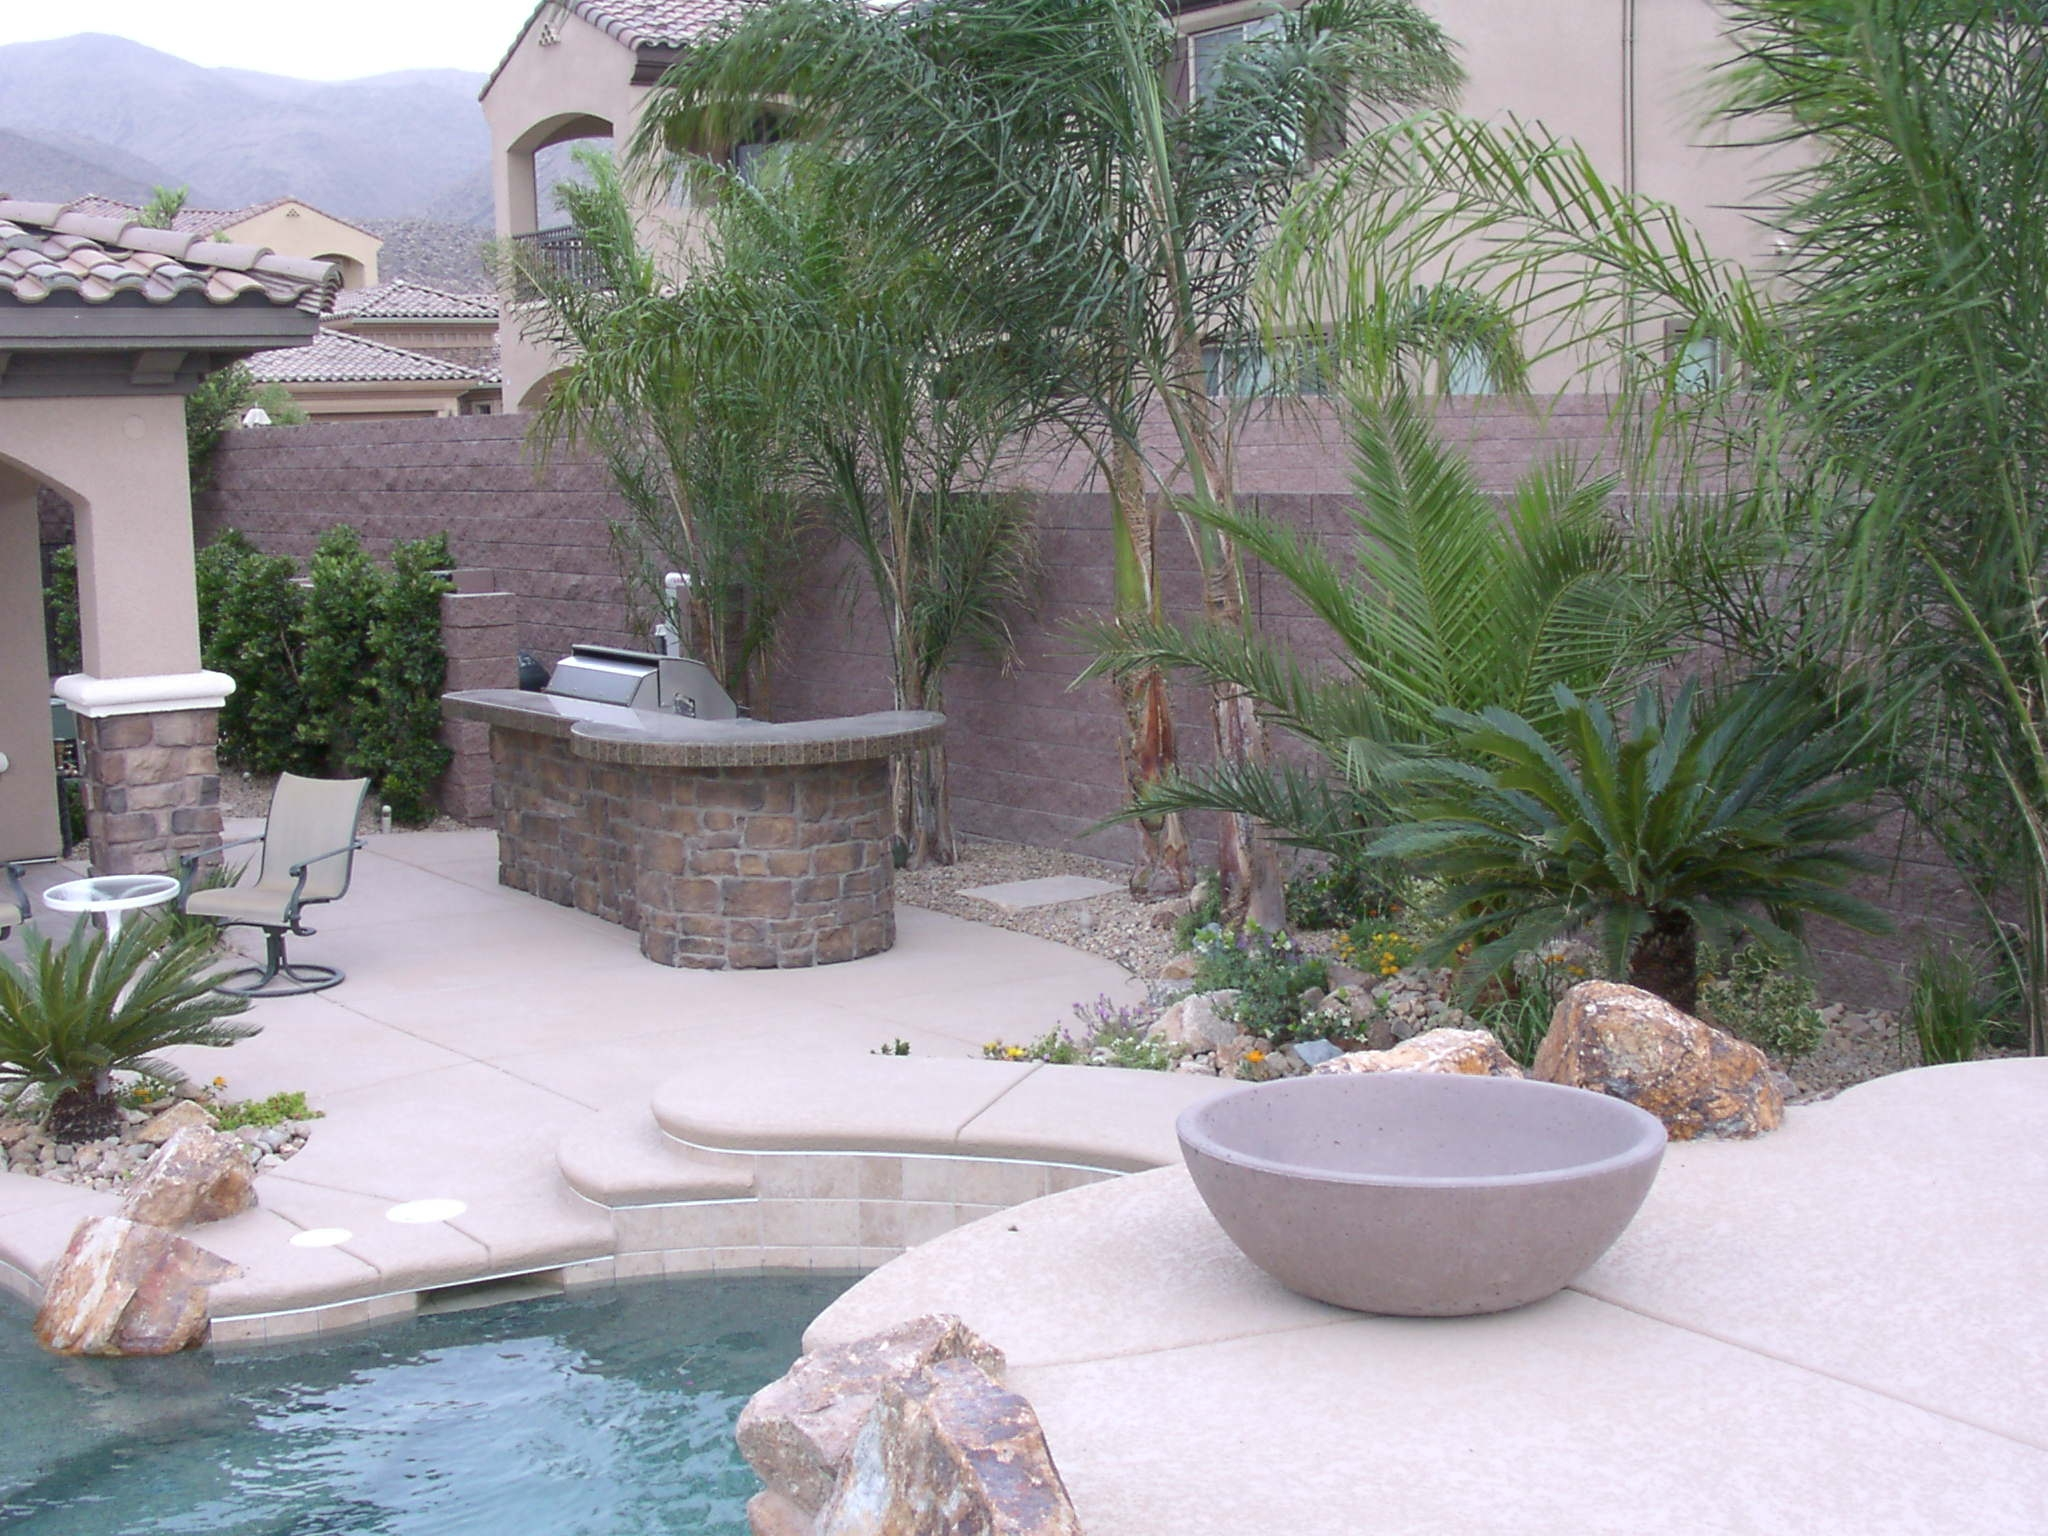 Custom Outdoor Kitchen Design By Nevada Outdoor Living Las Vegas Outdoor Ki